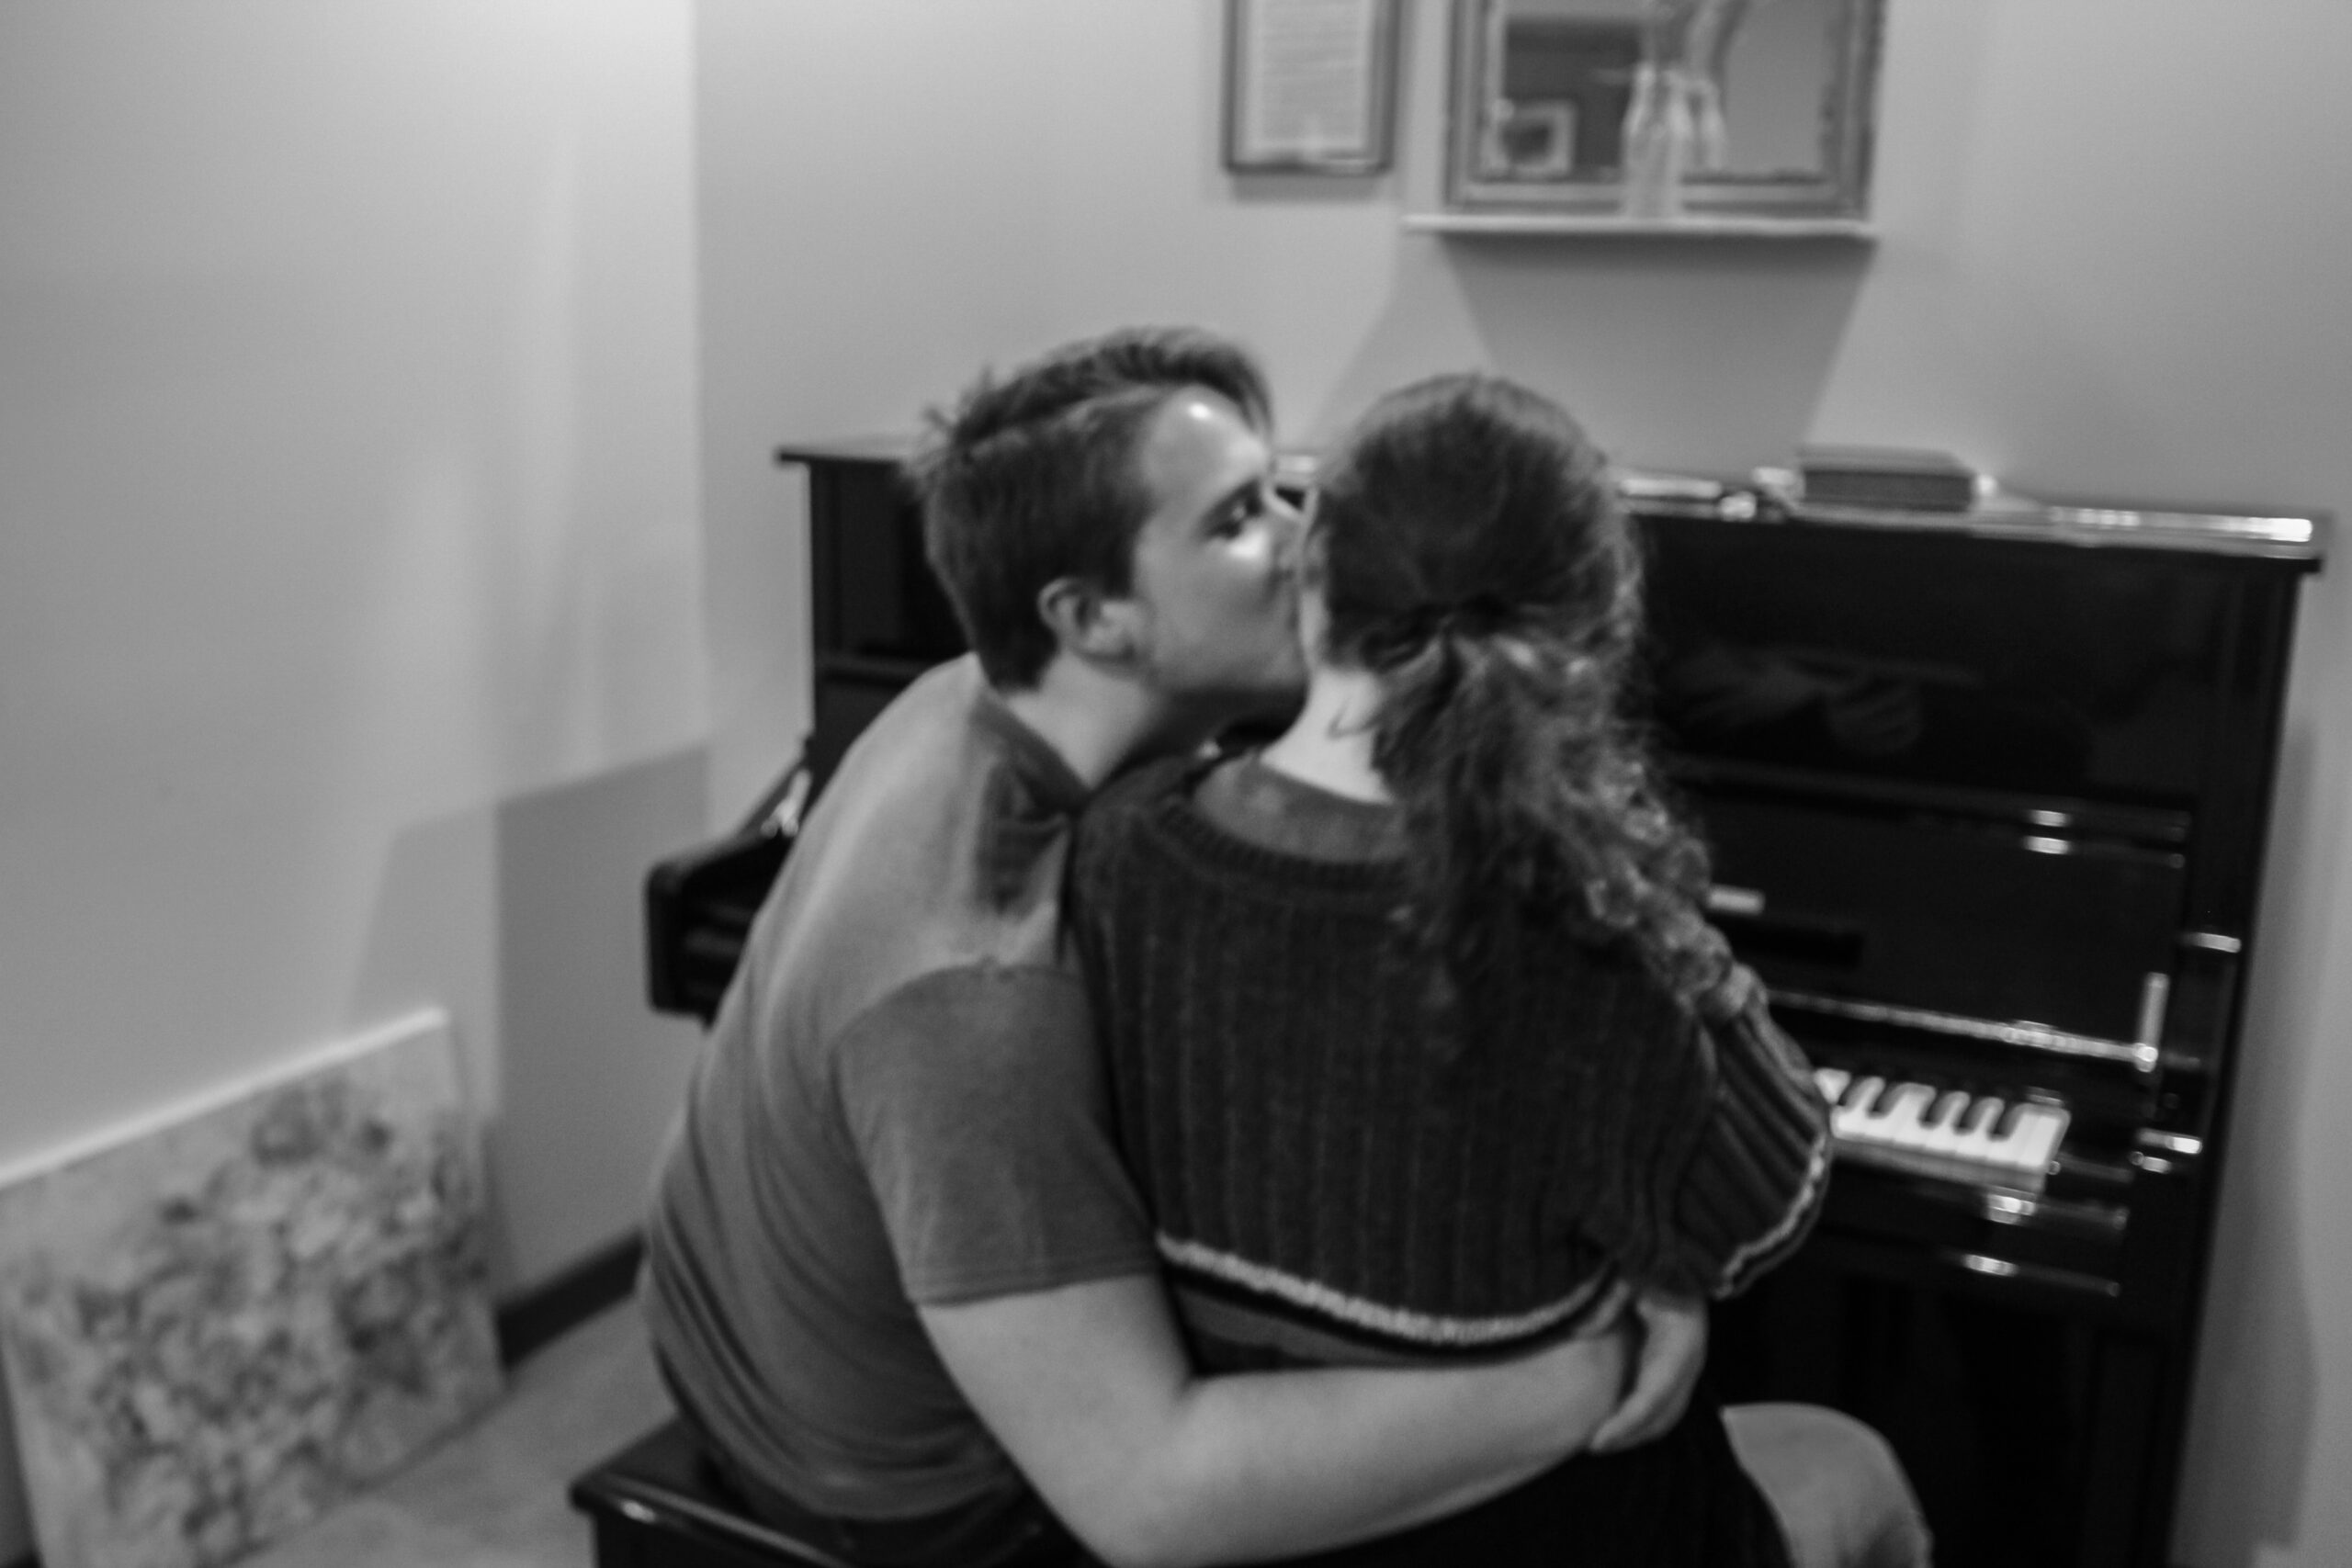 Mike Skibski takes a break from playing the piano to hug and kiss his girlfriend of over 8 months, Mady Ford, in Champaign, IL on Tuesday, Dec. 3, 2019.